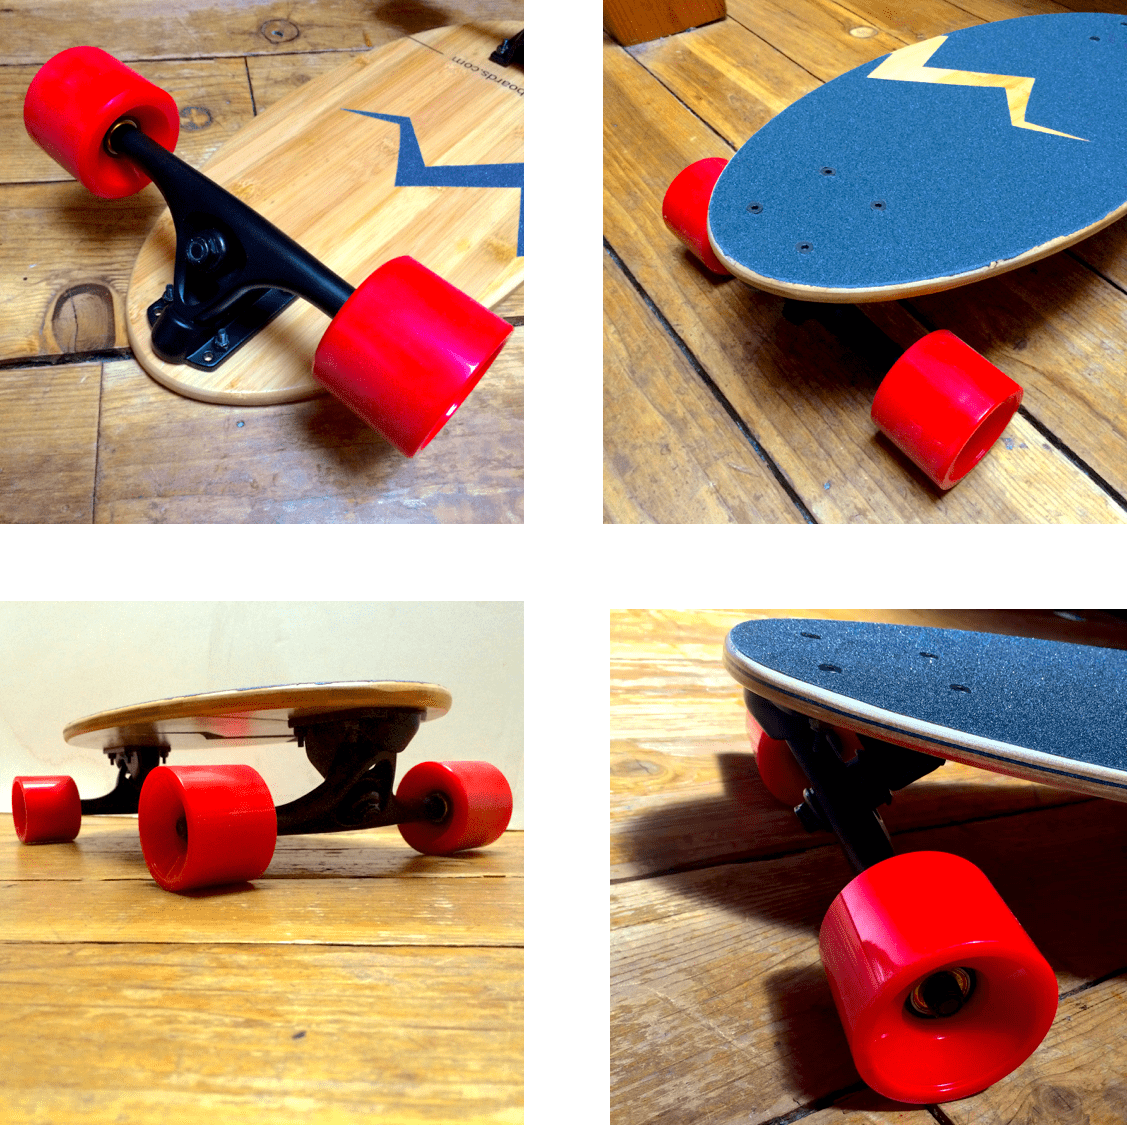 The Egg from Eggboards. Technical details: Length: 19'' | Width: 9'' | Thickness: 0.5'' | Weight: 6 lbs. 69MM x 55MM 76A wheels. Bamboo wood